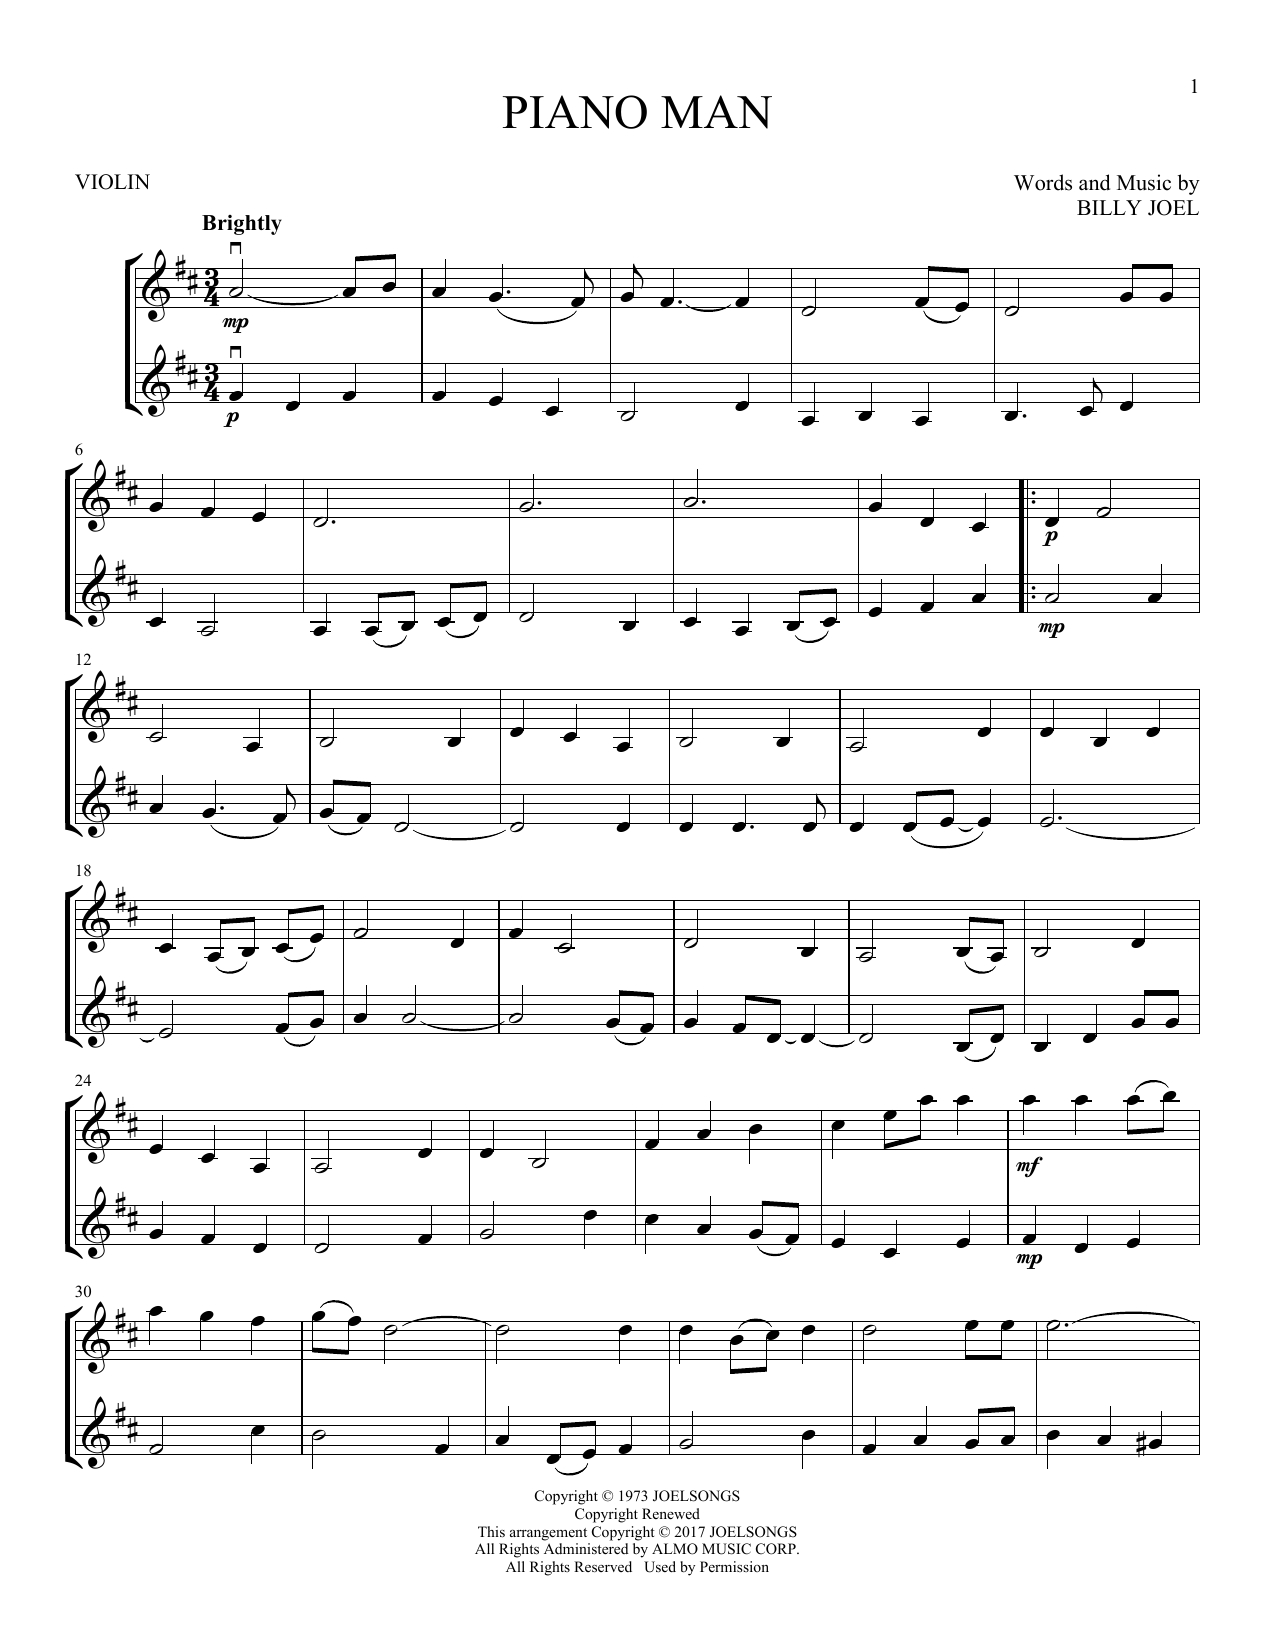 Piano Man Chords Billy Joel Piano Man Sheet Music Notes Chords Download Printable Vlndt Sku 403554